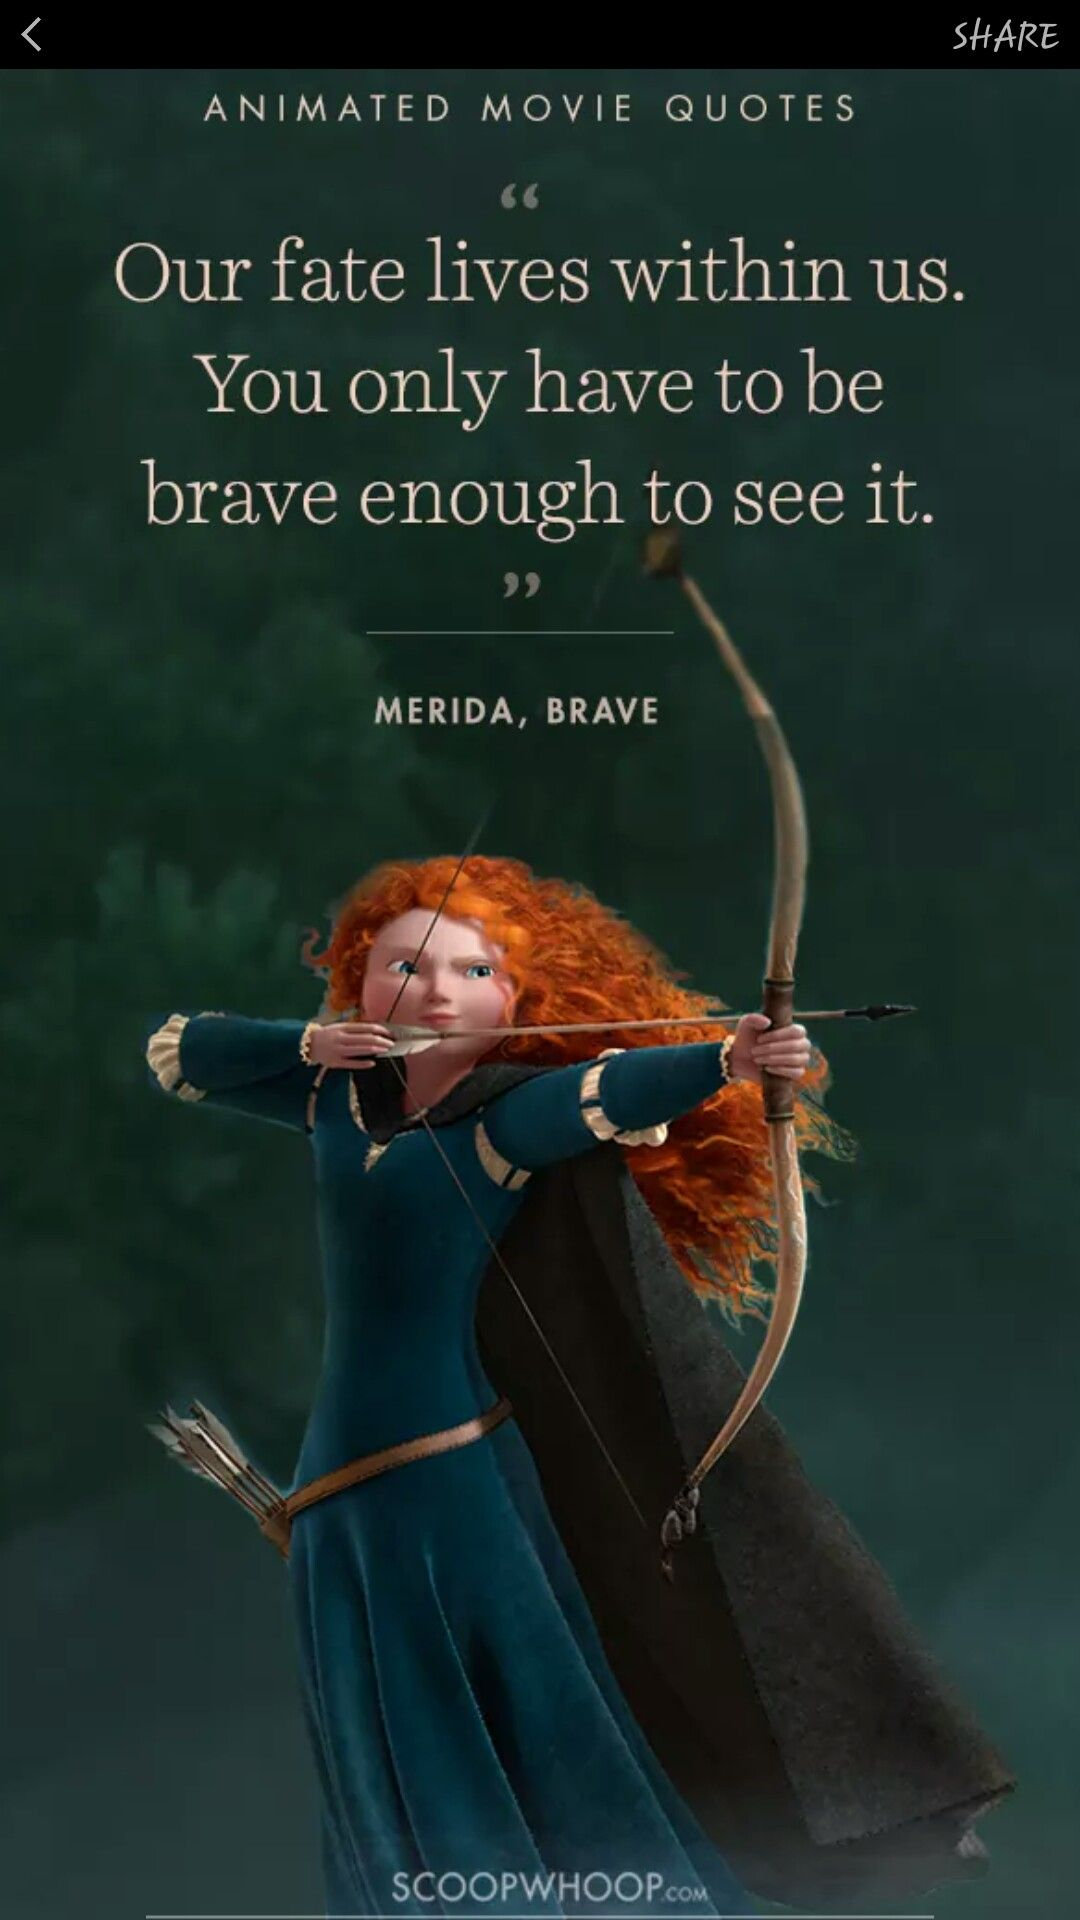 Pin By Stephanie Trusty On Life Changing Quotes Cute Disney Quotes Brave Movie Quotes Life Quotes Disney